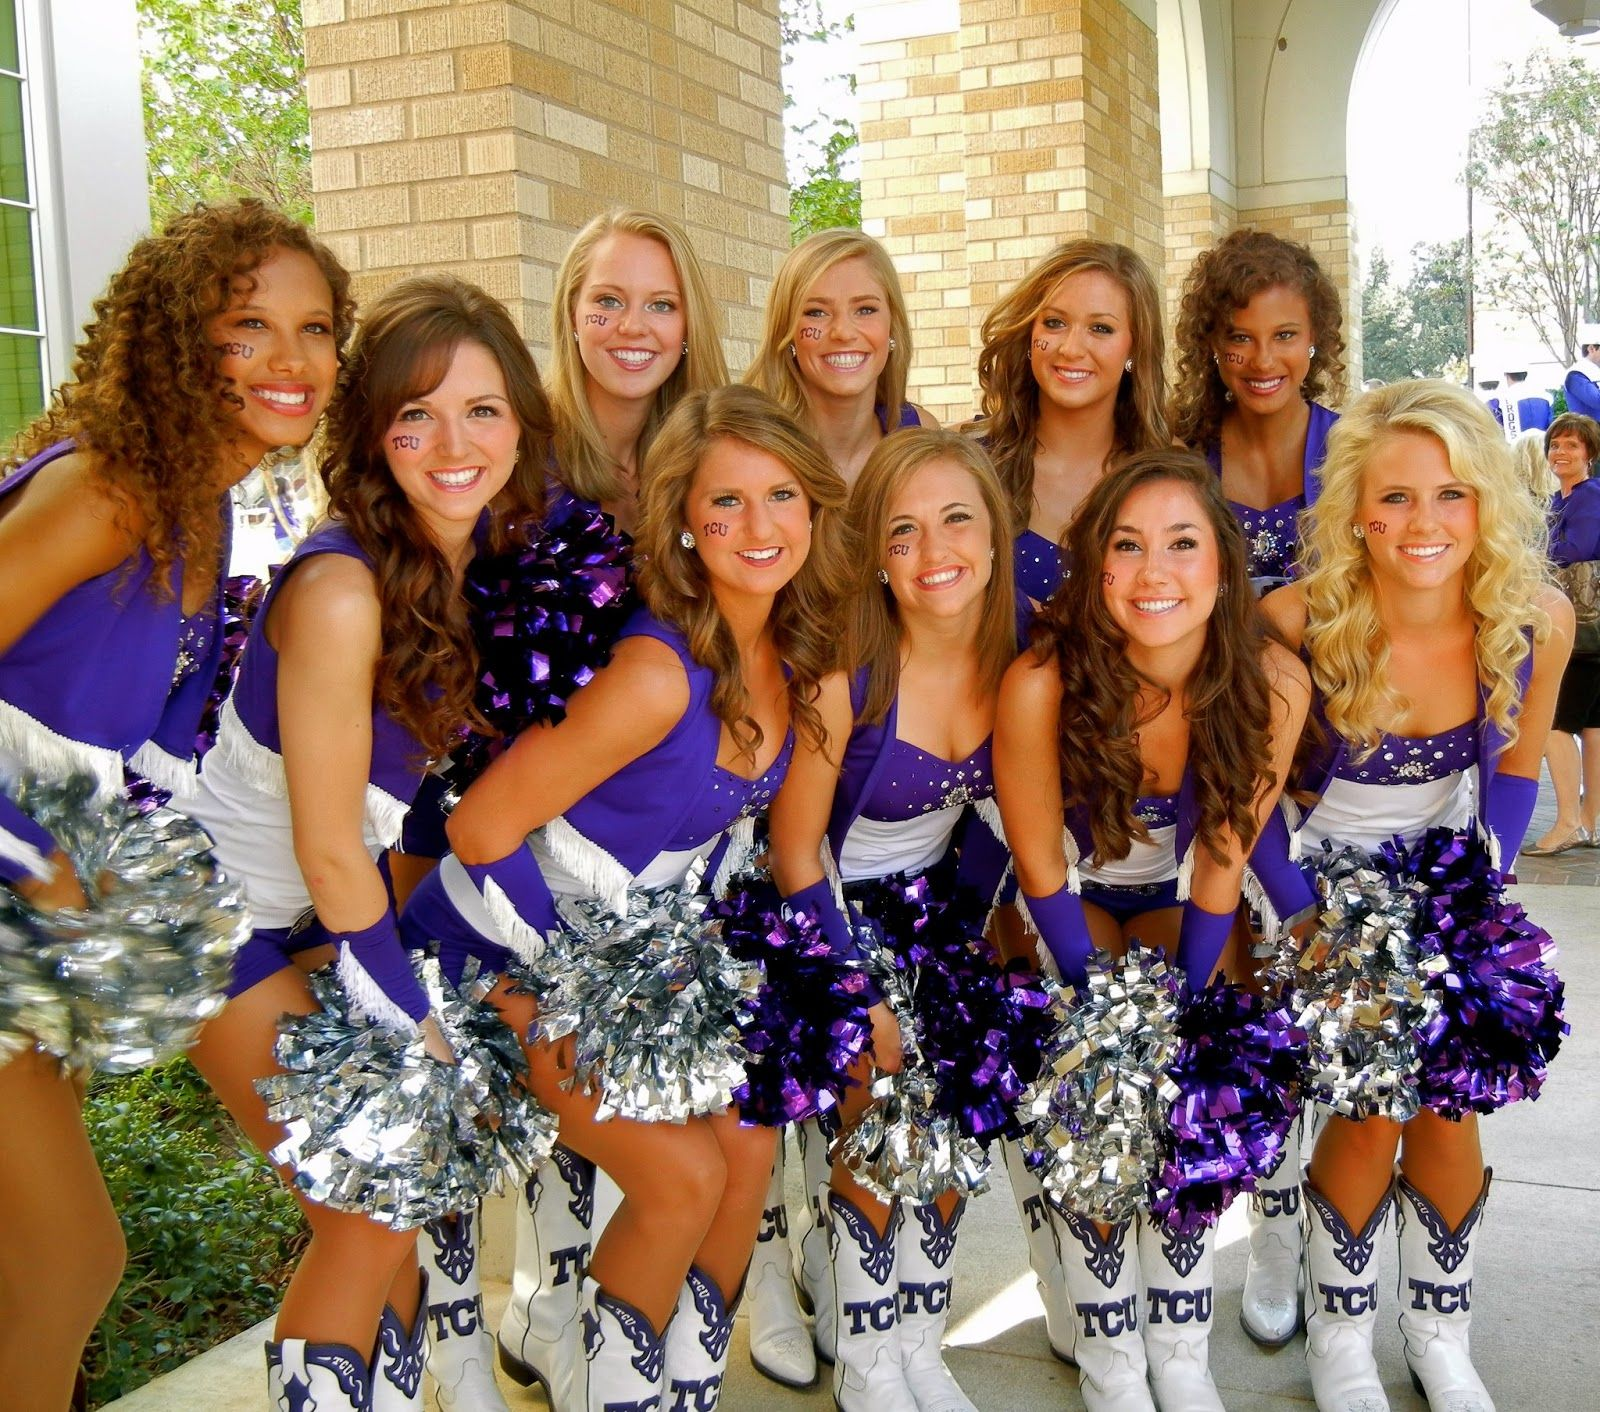 Tcu Cheerleaders Pictures College Cheerleader Heaven Tcu Survived Their First Year In The Big